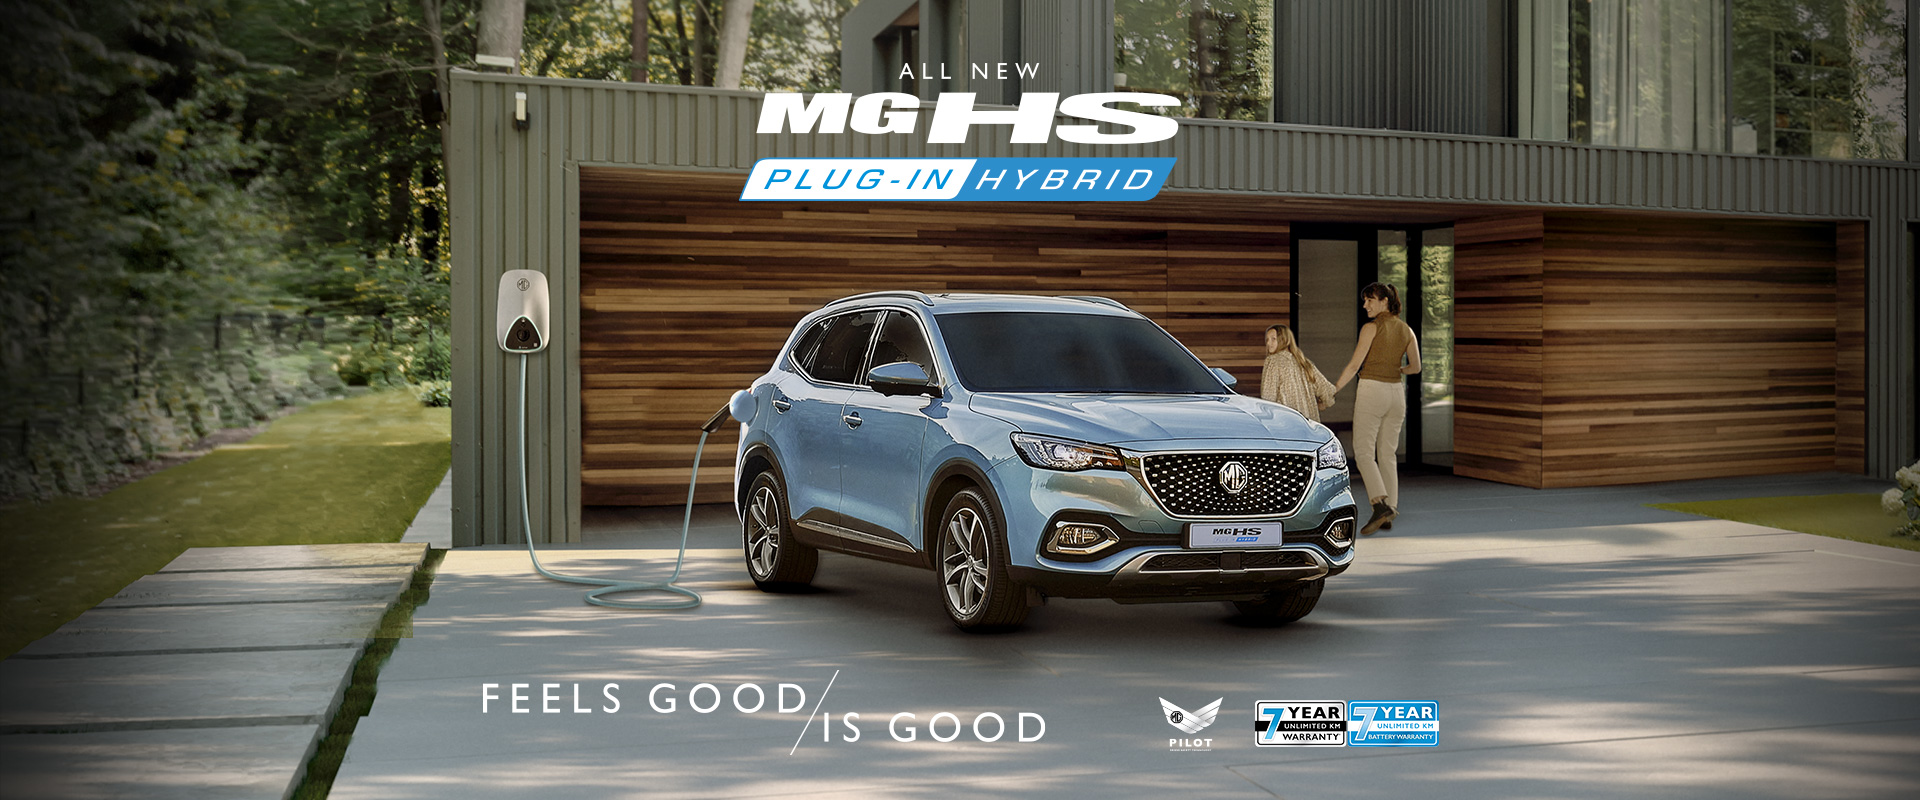 MG HS Plug-In Hybrid. The best of both worlds. Learn more.